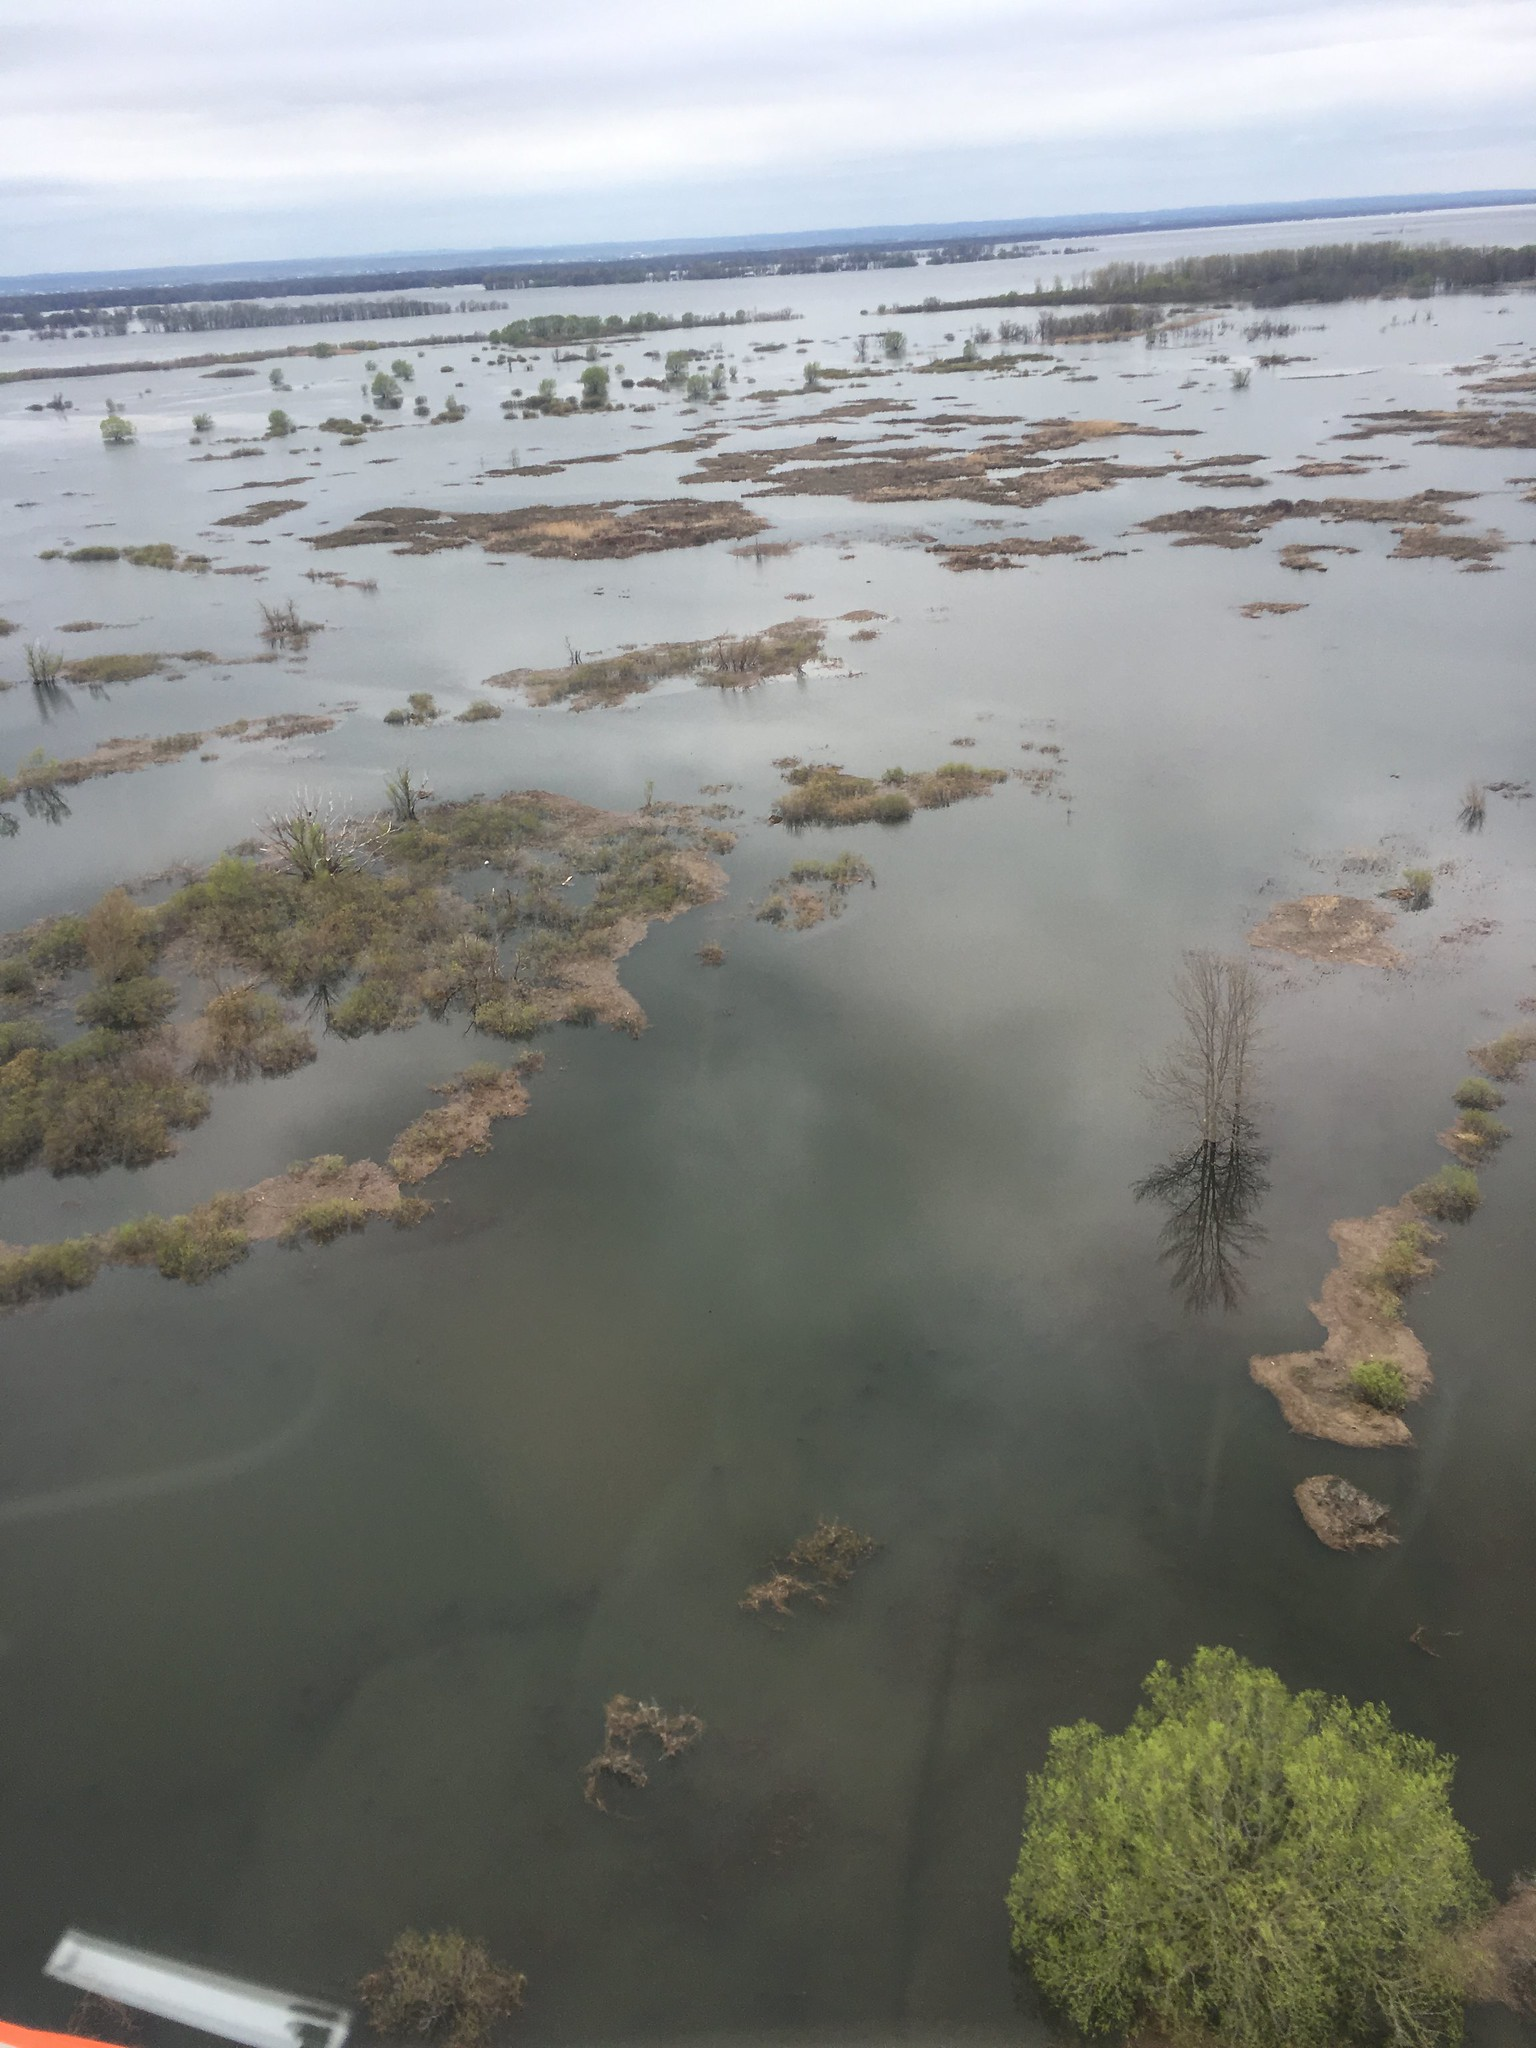 Flooding rivers were abundant along transects in 2019. Photo: Garrett Wilkerson, USFWS